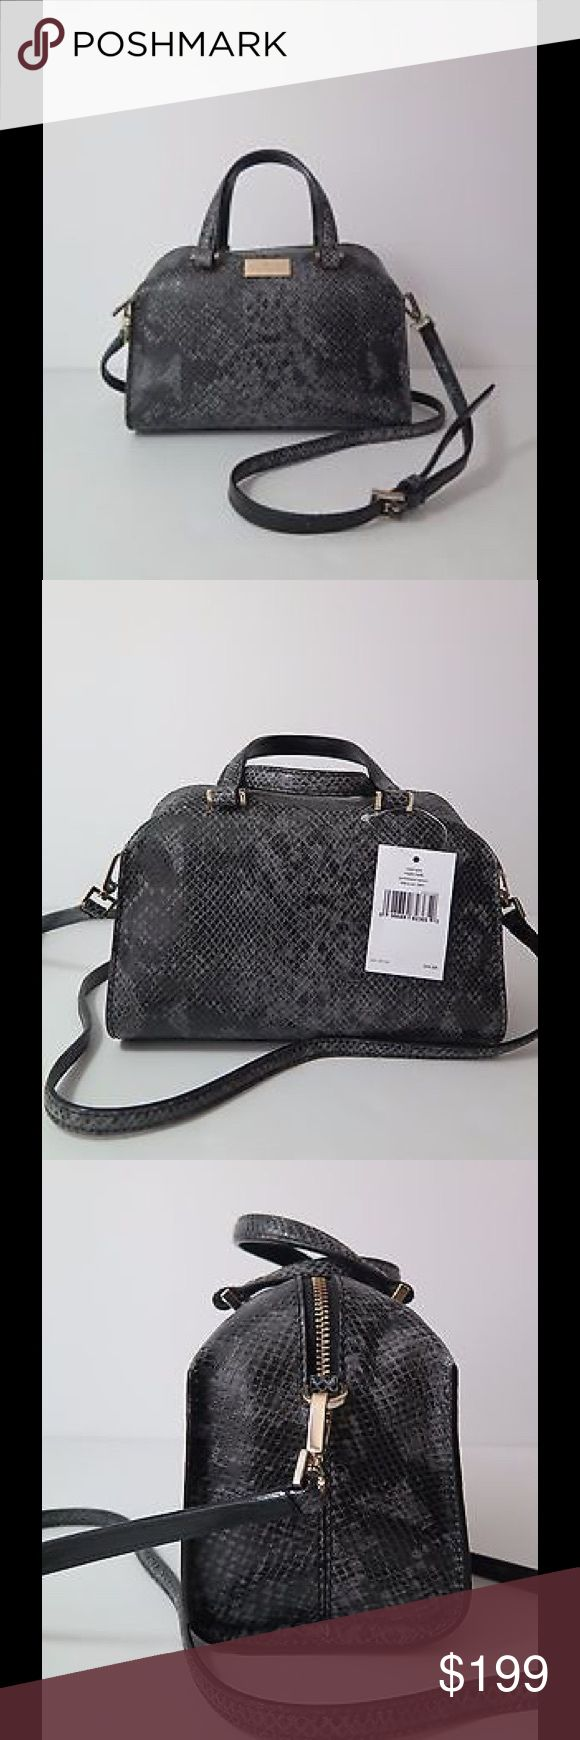 """HP🎉 Kate Spade Mini Mara Parliament Square Exotic Exotic snake print genuine Leather  Top zip closure  Approximately measures:  Height 6.5"""" x Depth 4.5"""" x Width 9"""" ; Handles 3"""" drop  Adjustable, removable cross body shoulder strap 22"""" max  14 karat light gold plated hardware  Interior zipper pocket and two open pockets  Back slide pocket  A structured silhouette with snake-patterned accents offers an appealing blend of classic and edgy style  Brand new with tag; retail price $365  Smoke…"""